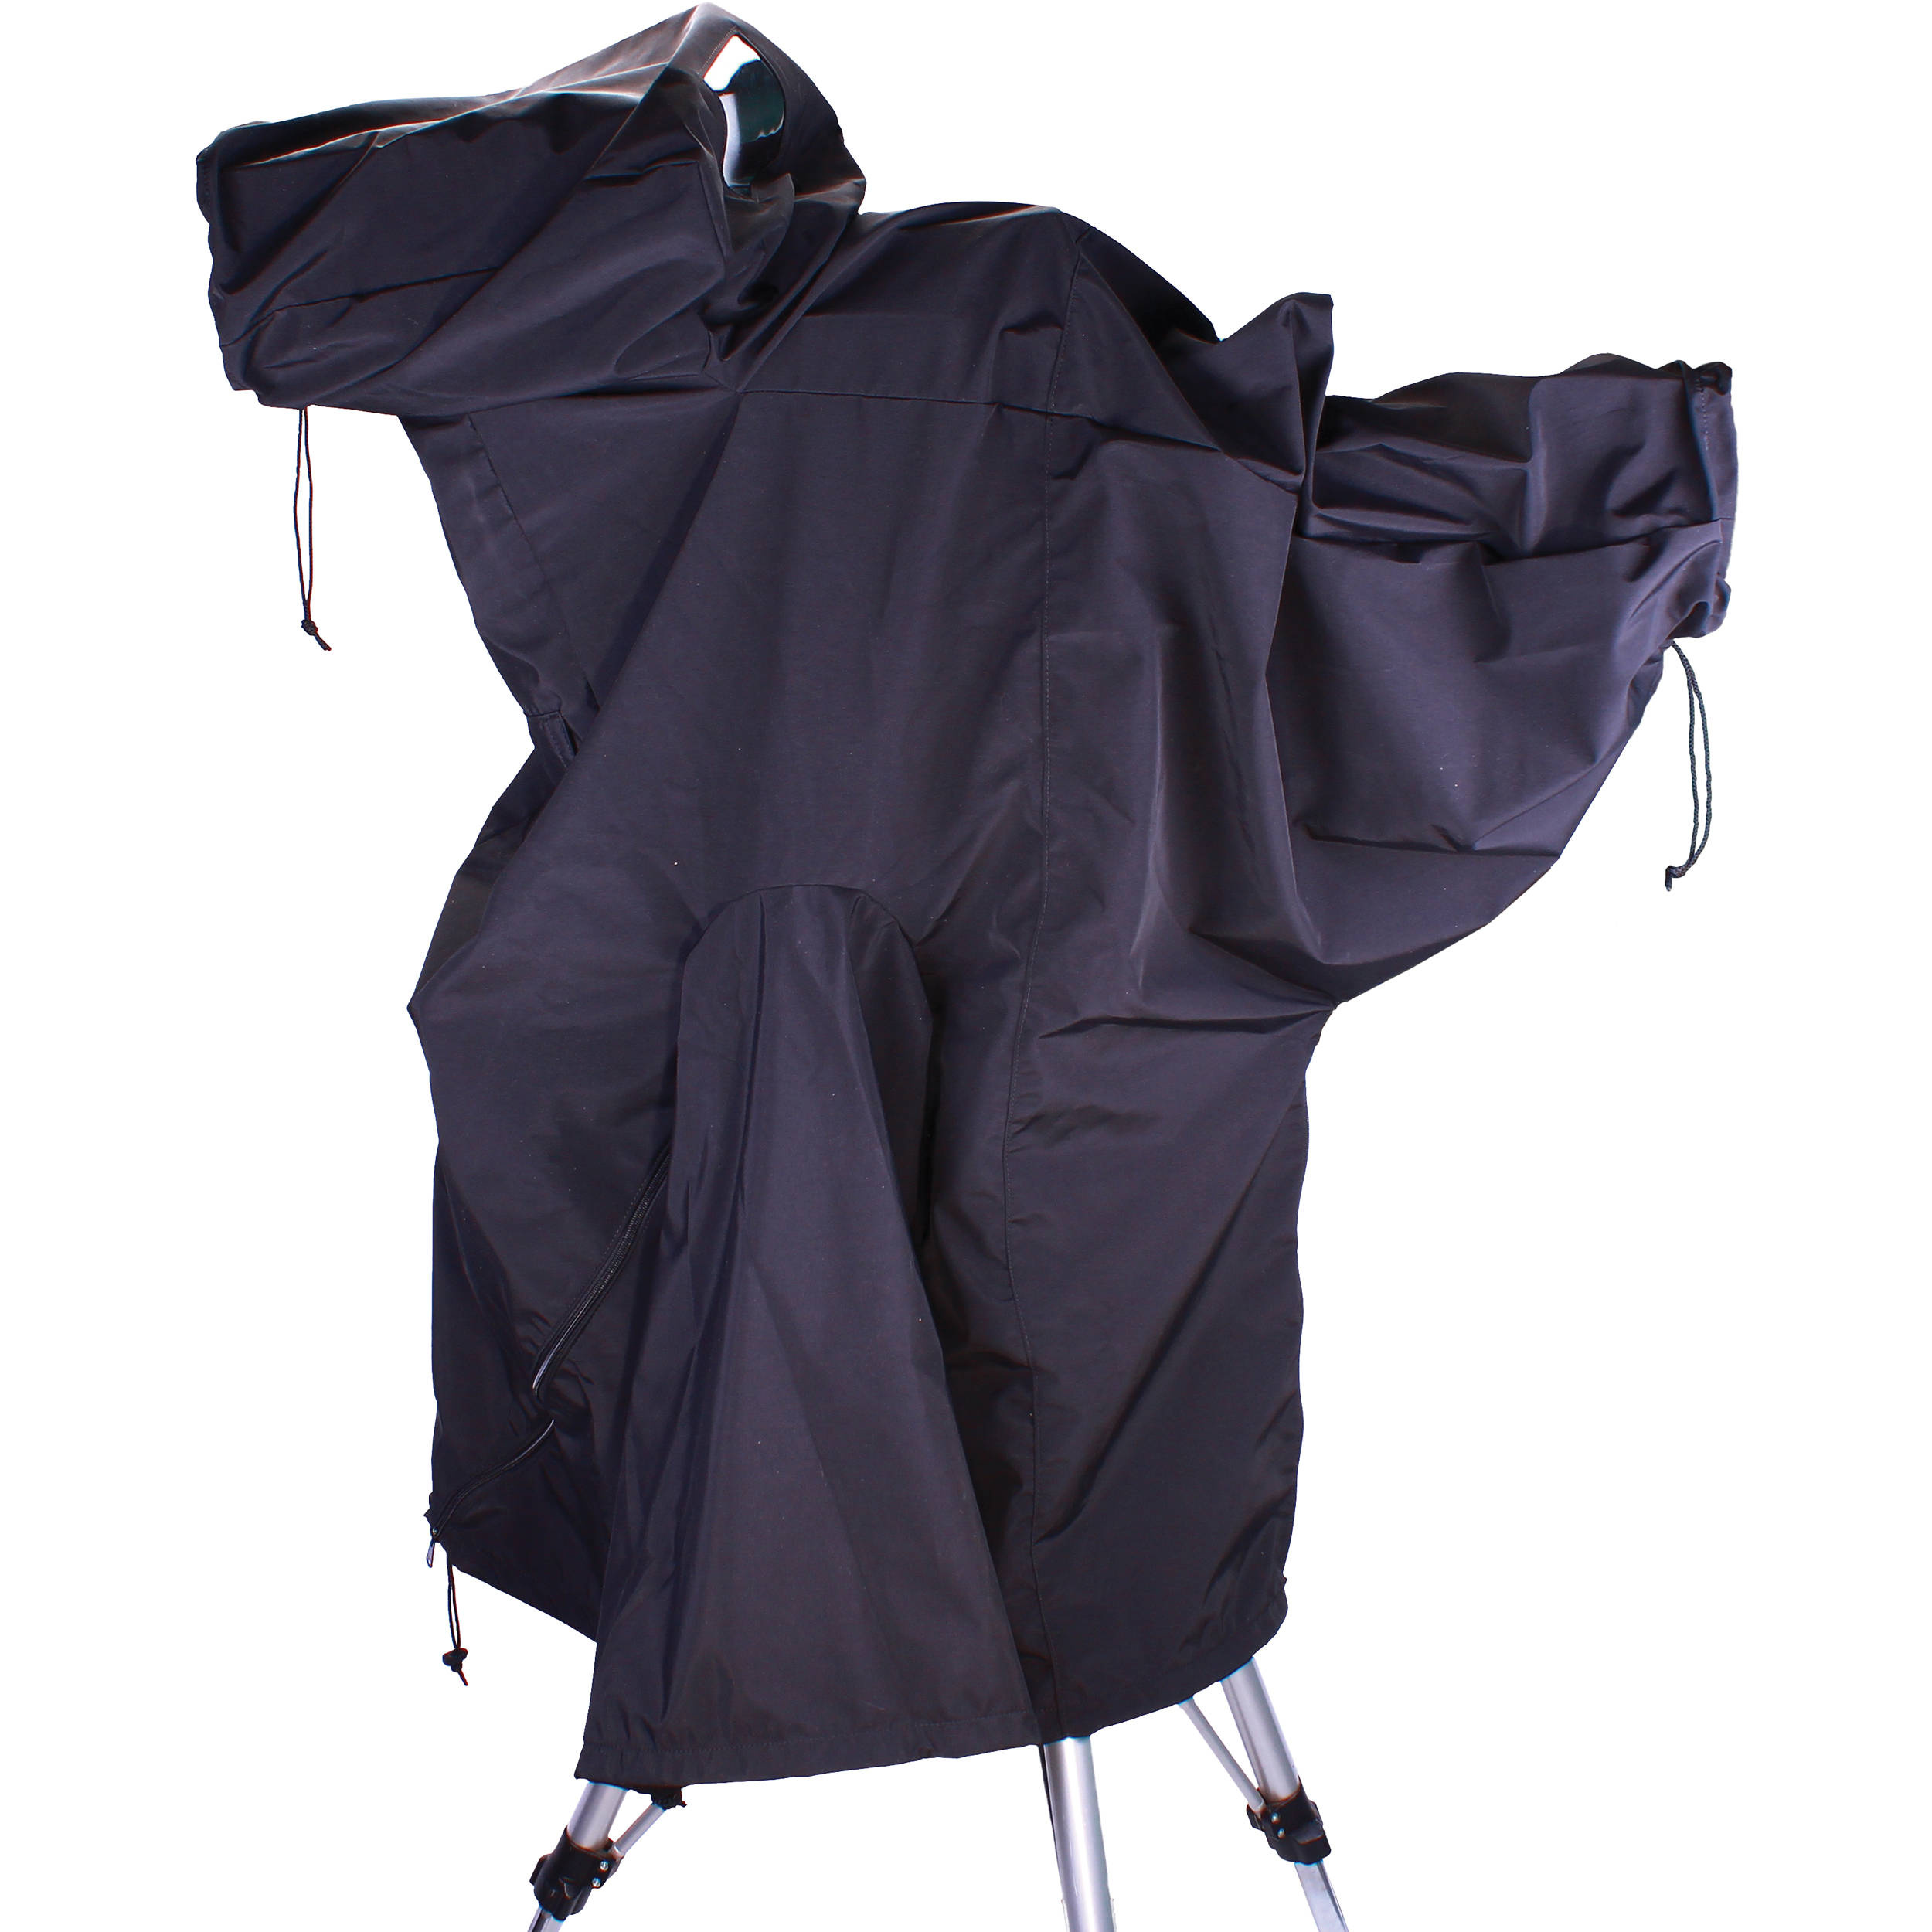 Porta Brace CLK-2 Camera Cloak/Stadium Camera Rain Cover (Black)